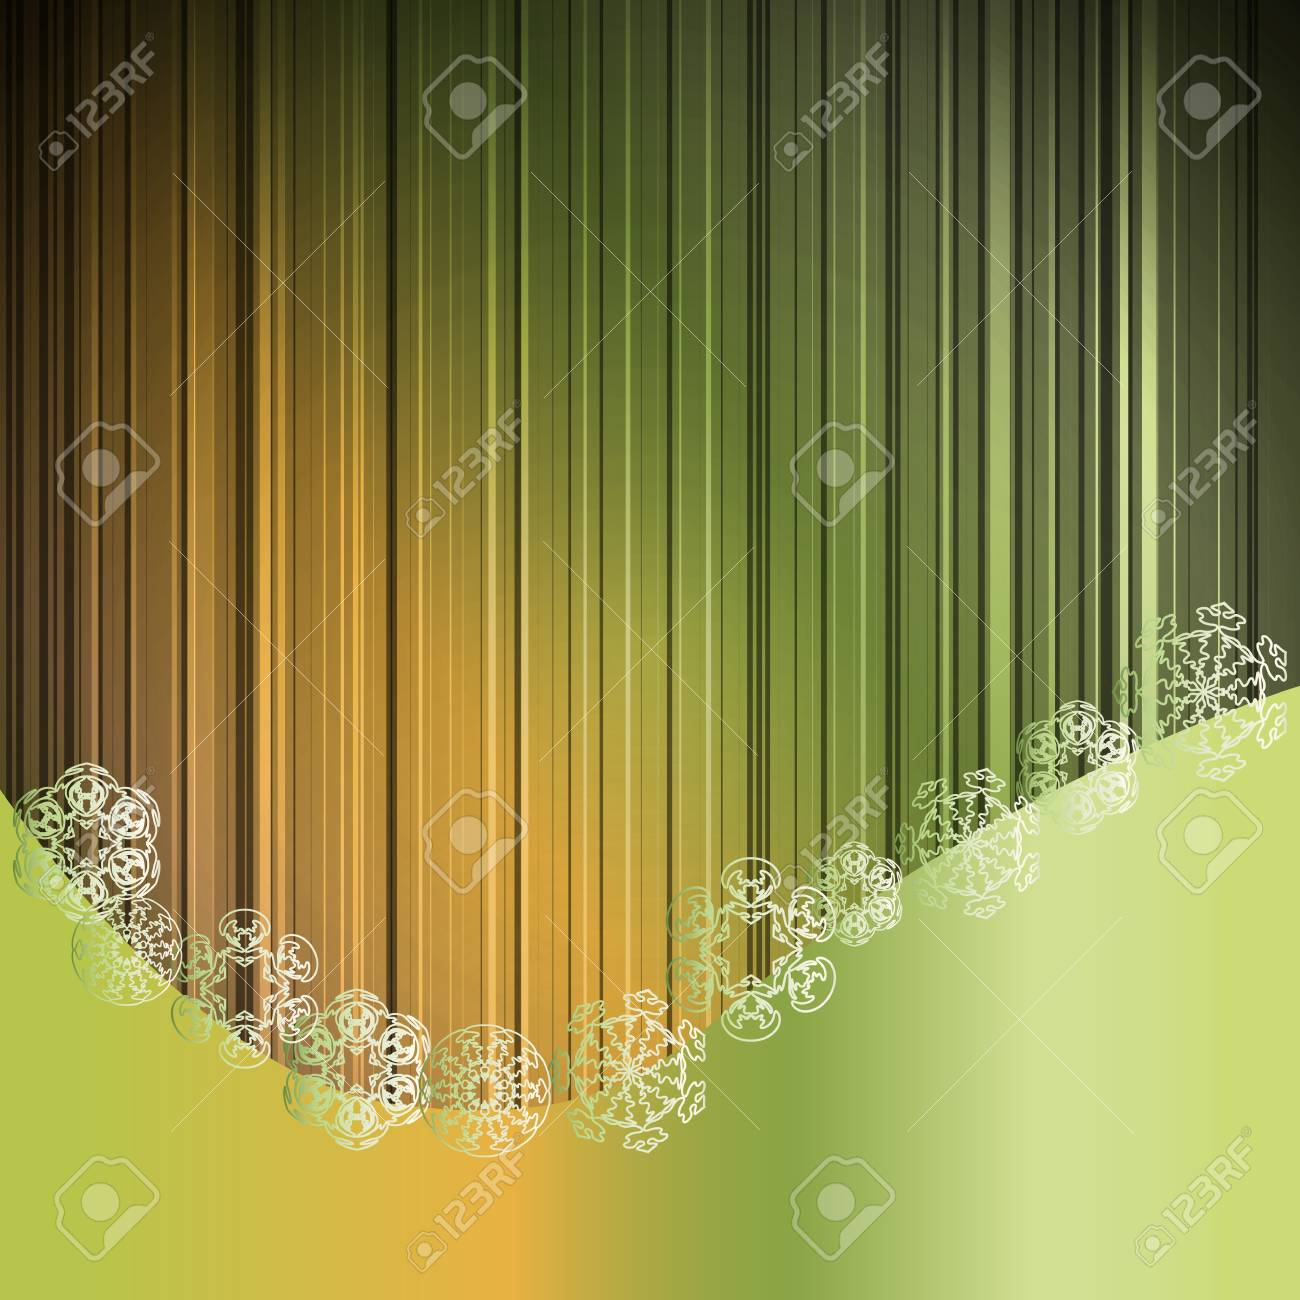 Striped new year christmas  background. Vector illustration eps10 Stock Vector - 11554293